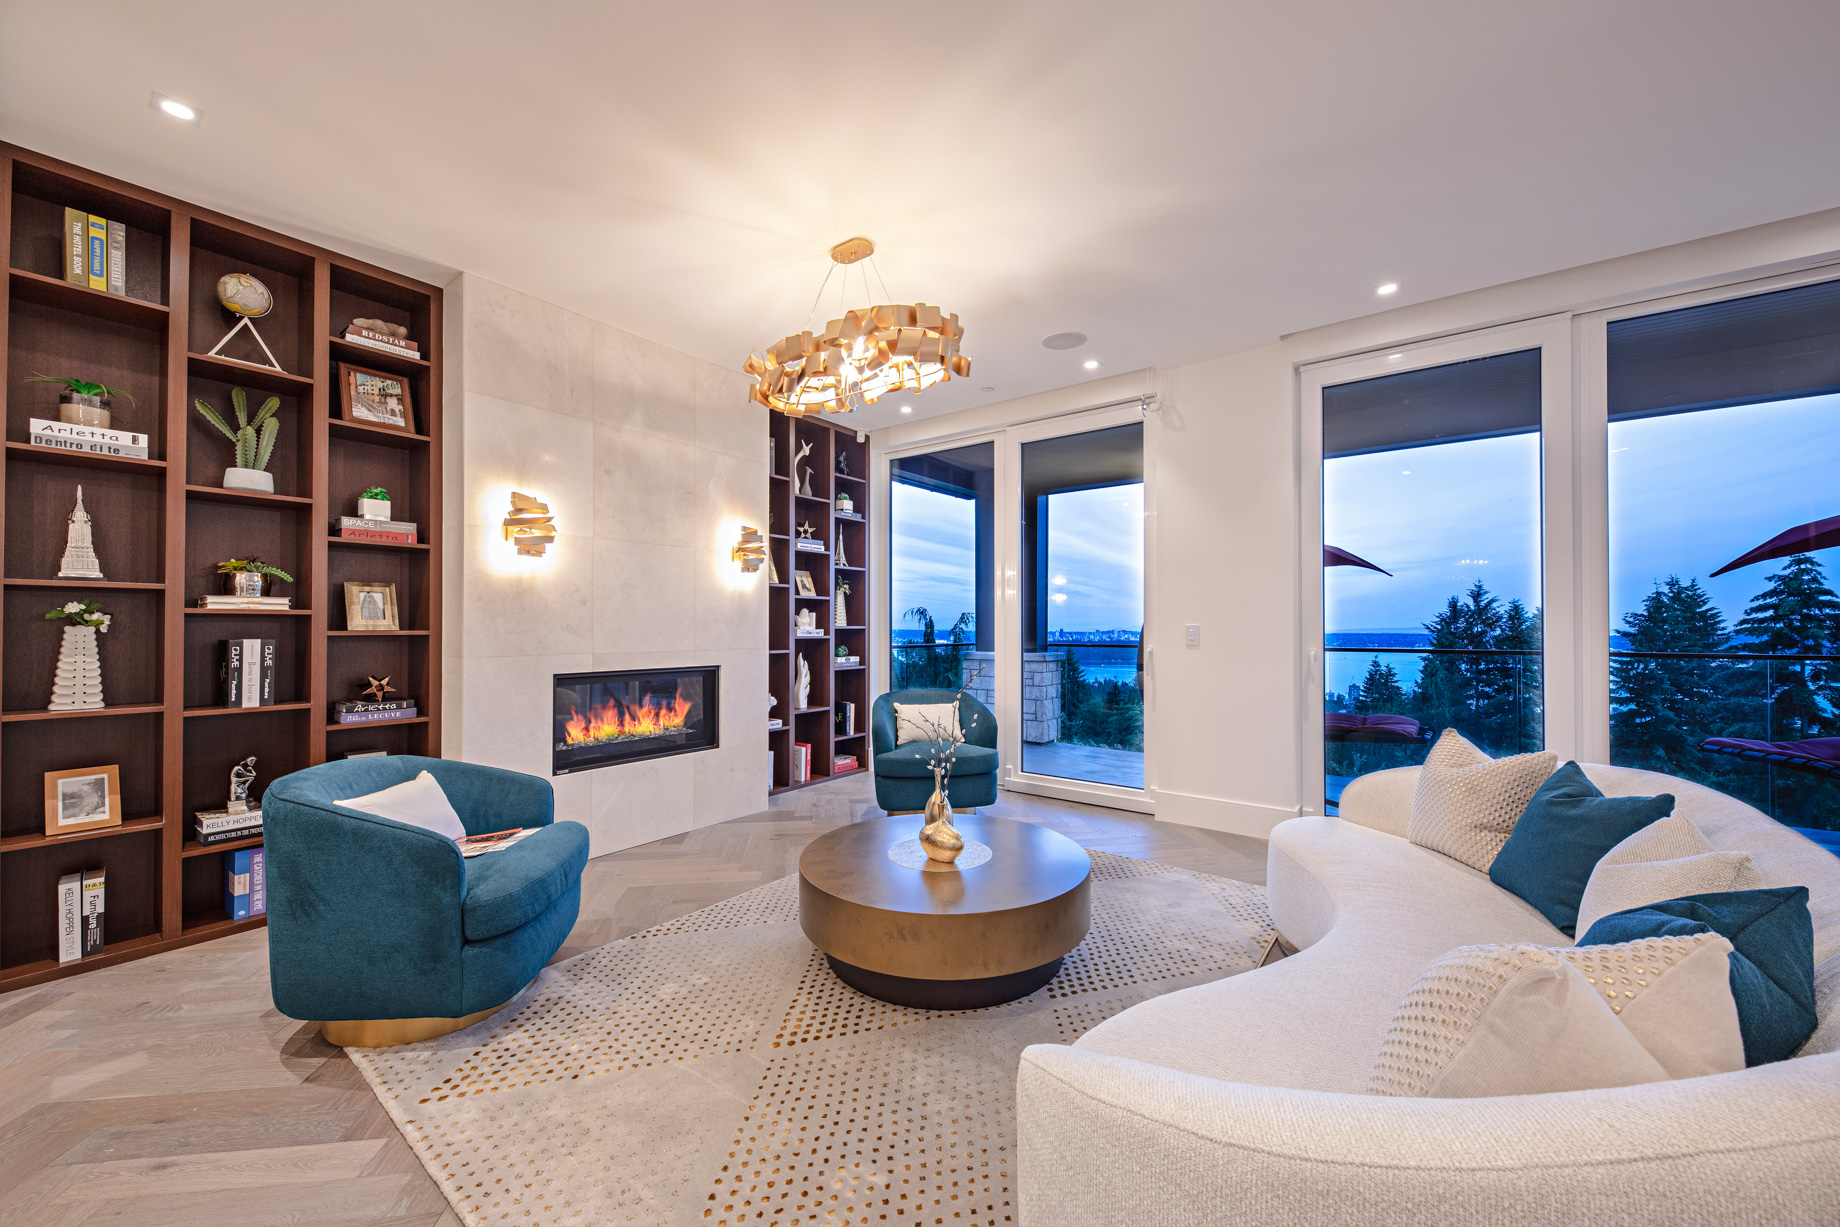 2111 Union Court, West Vancouver, BC, Canada - Living Room